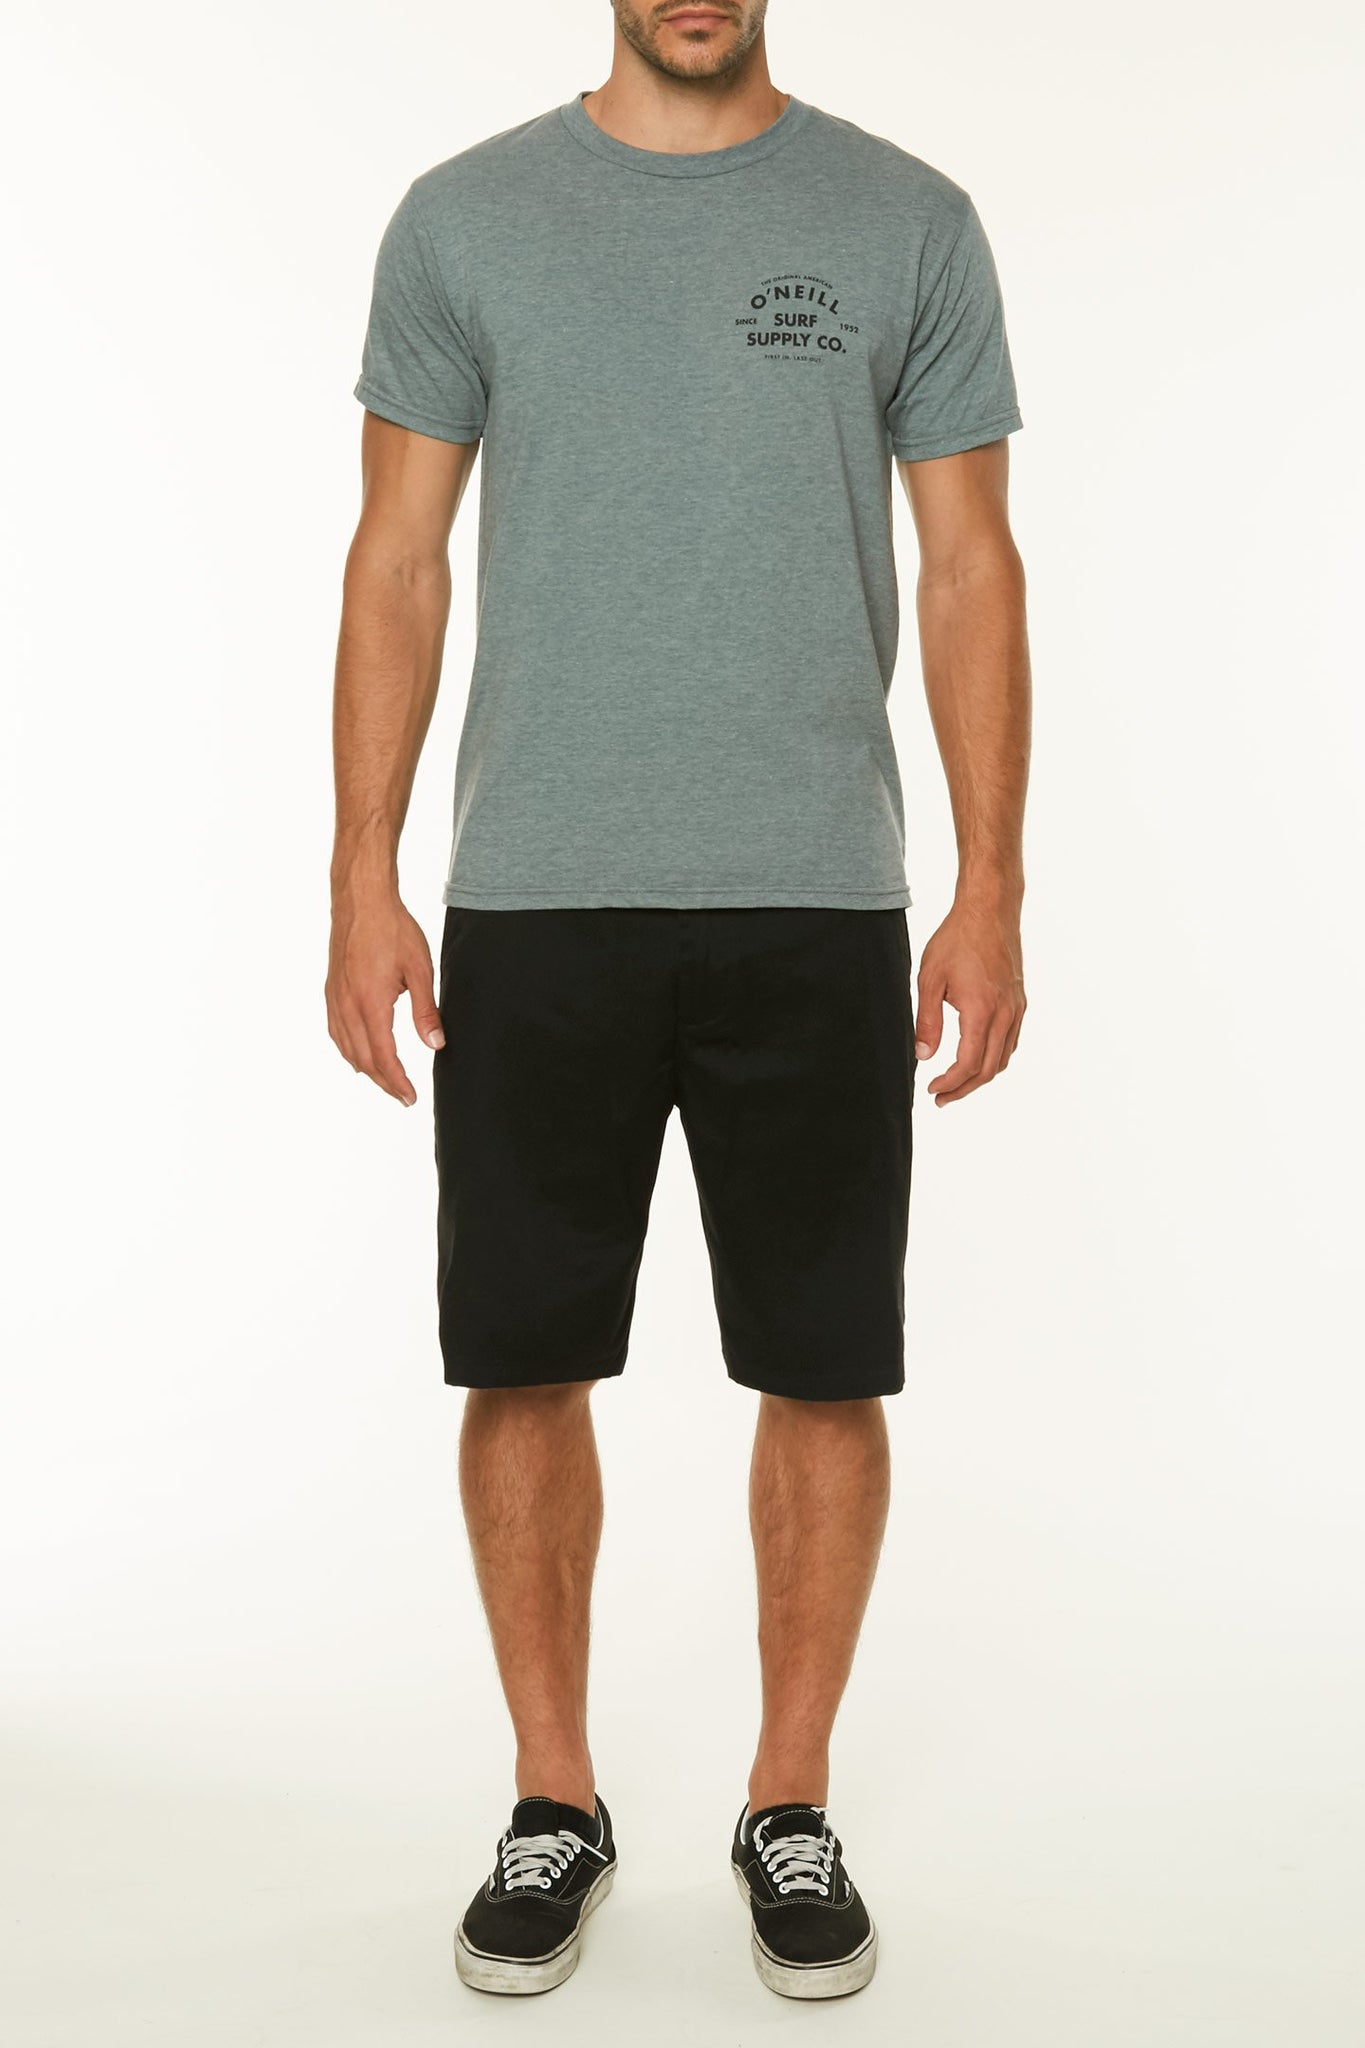 Contact Stretch Shorts - Black | O'Neill